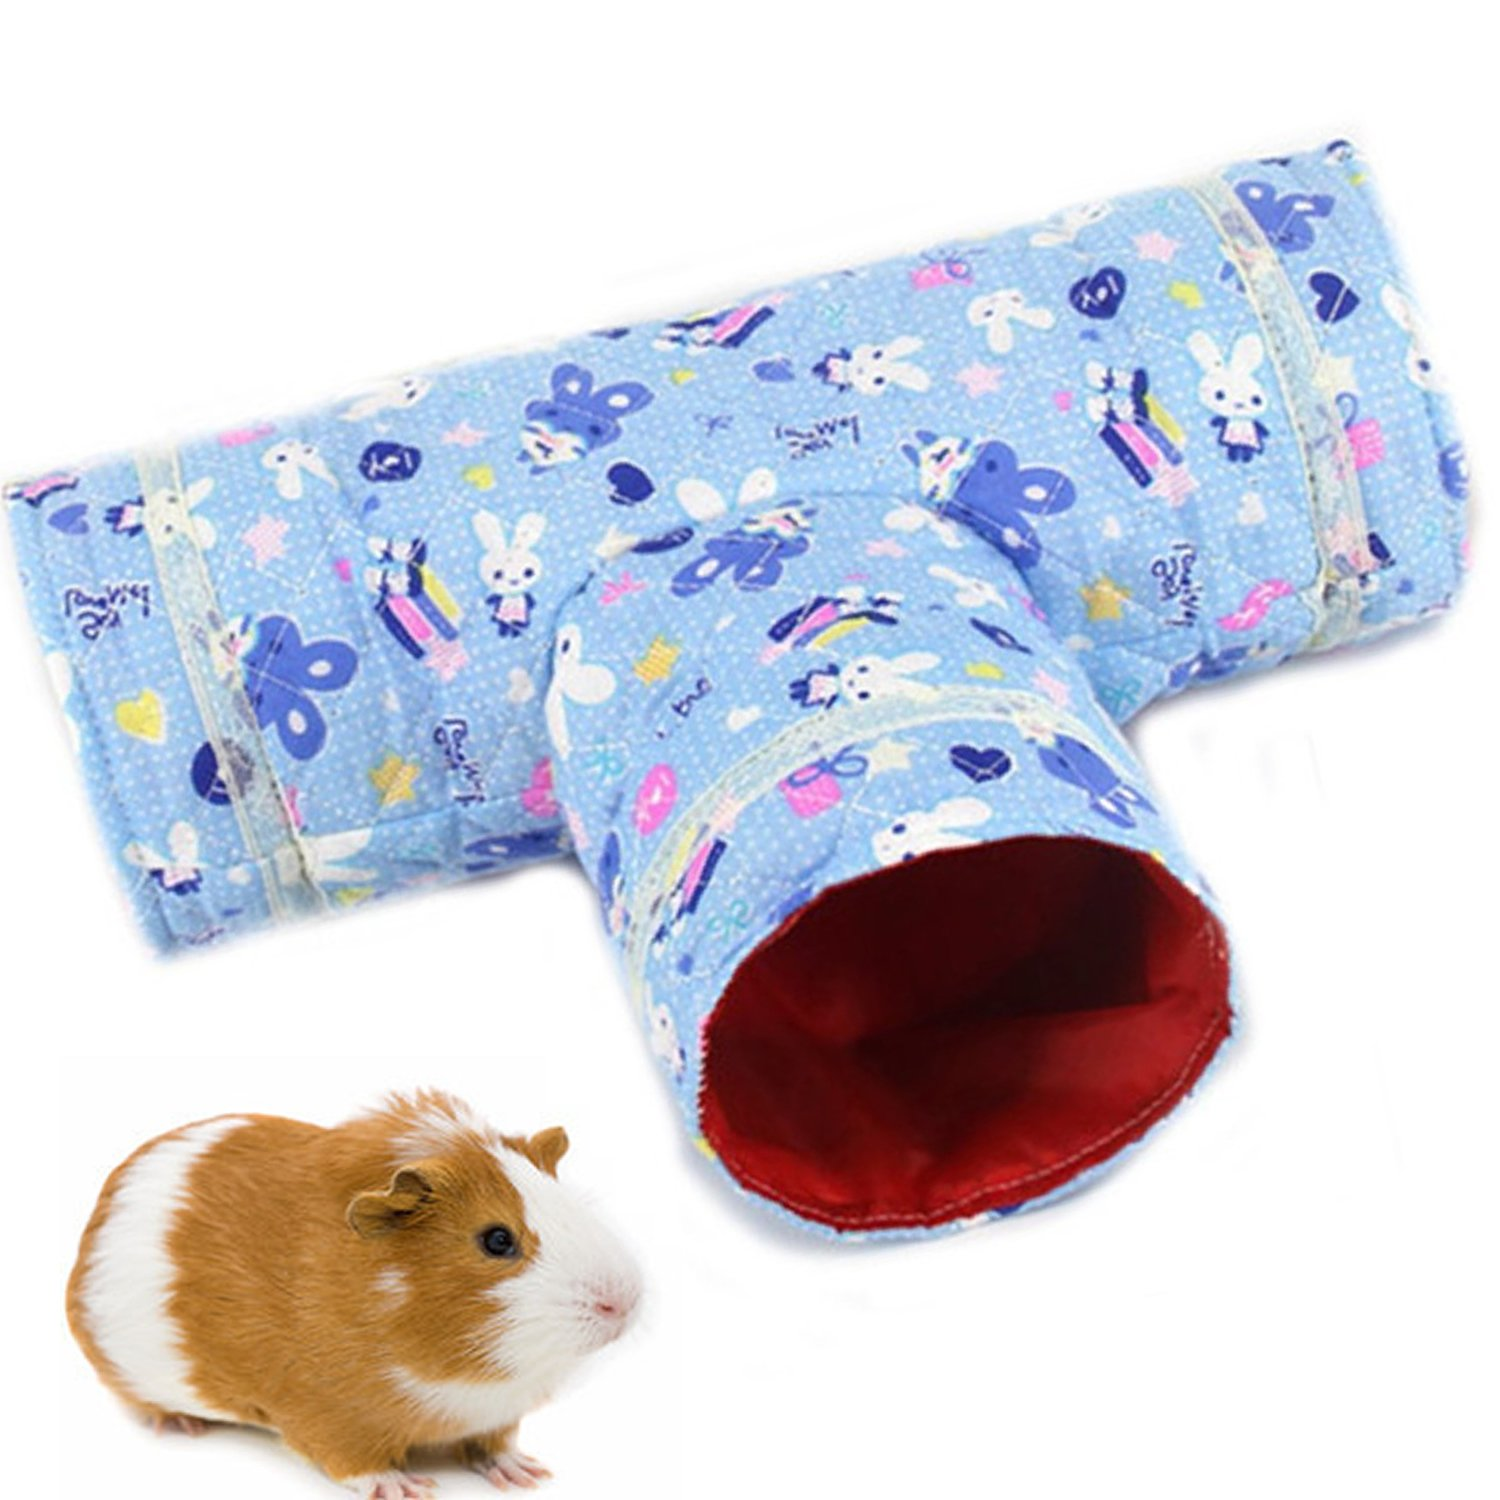 pranovo 3 Way Hamster Tunnel Toy T Shape Spring Collapsible Cartoon Hideout Bed Nest House Tubes Playing Hut for Gerbil Rat Guinea Pig Chinchilla Squirrel Rabbits Small Animals (Bule)